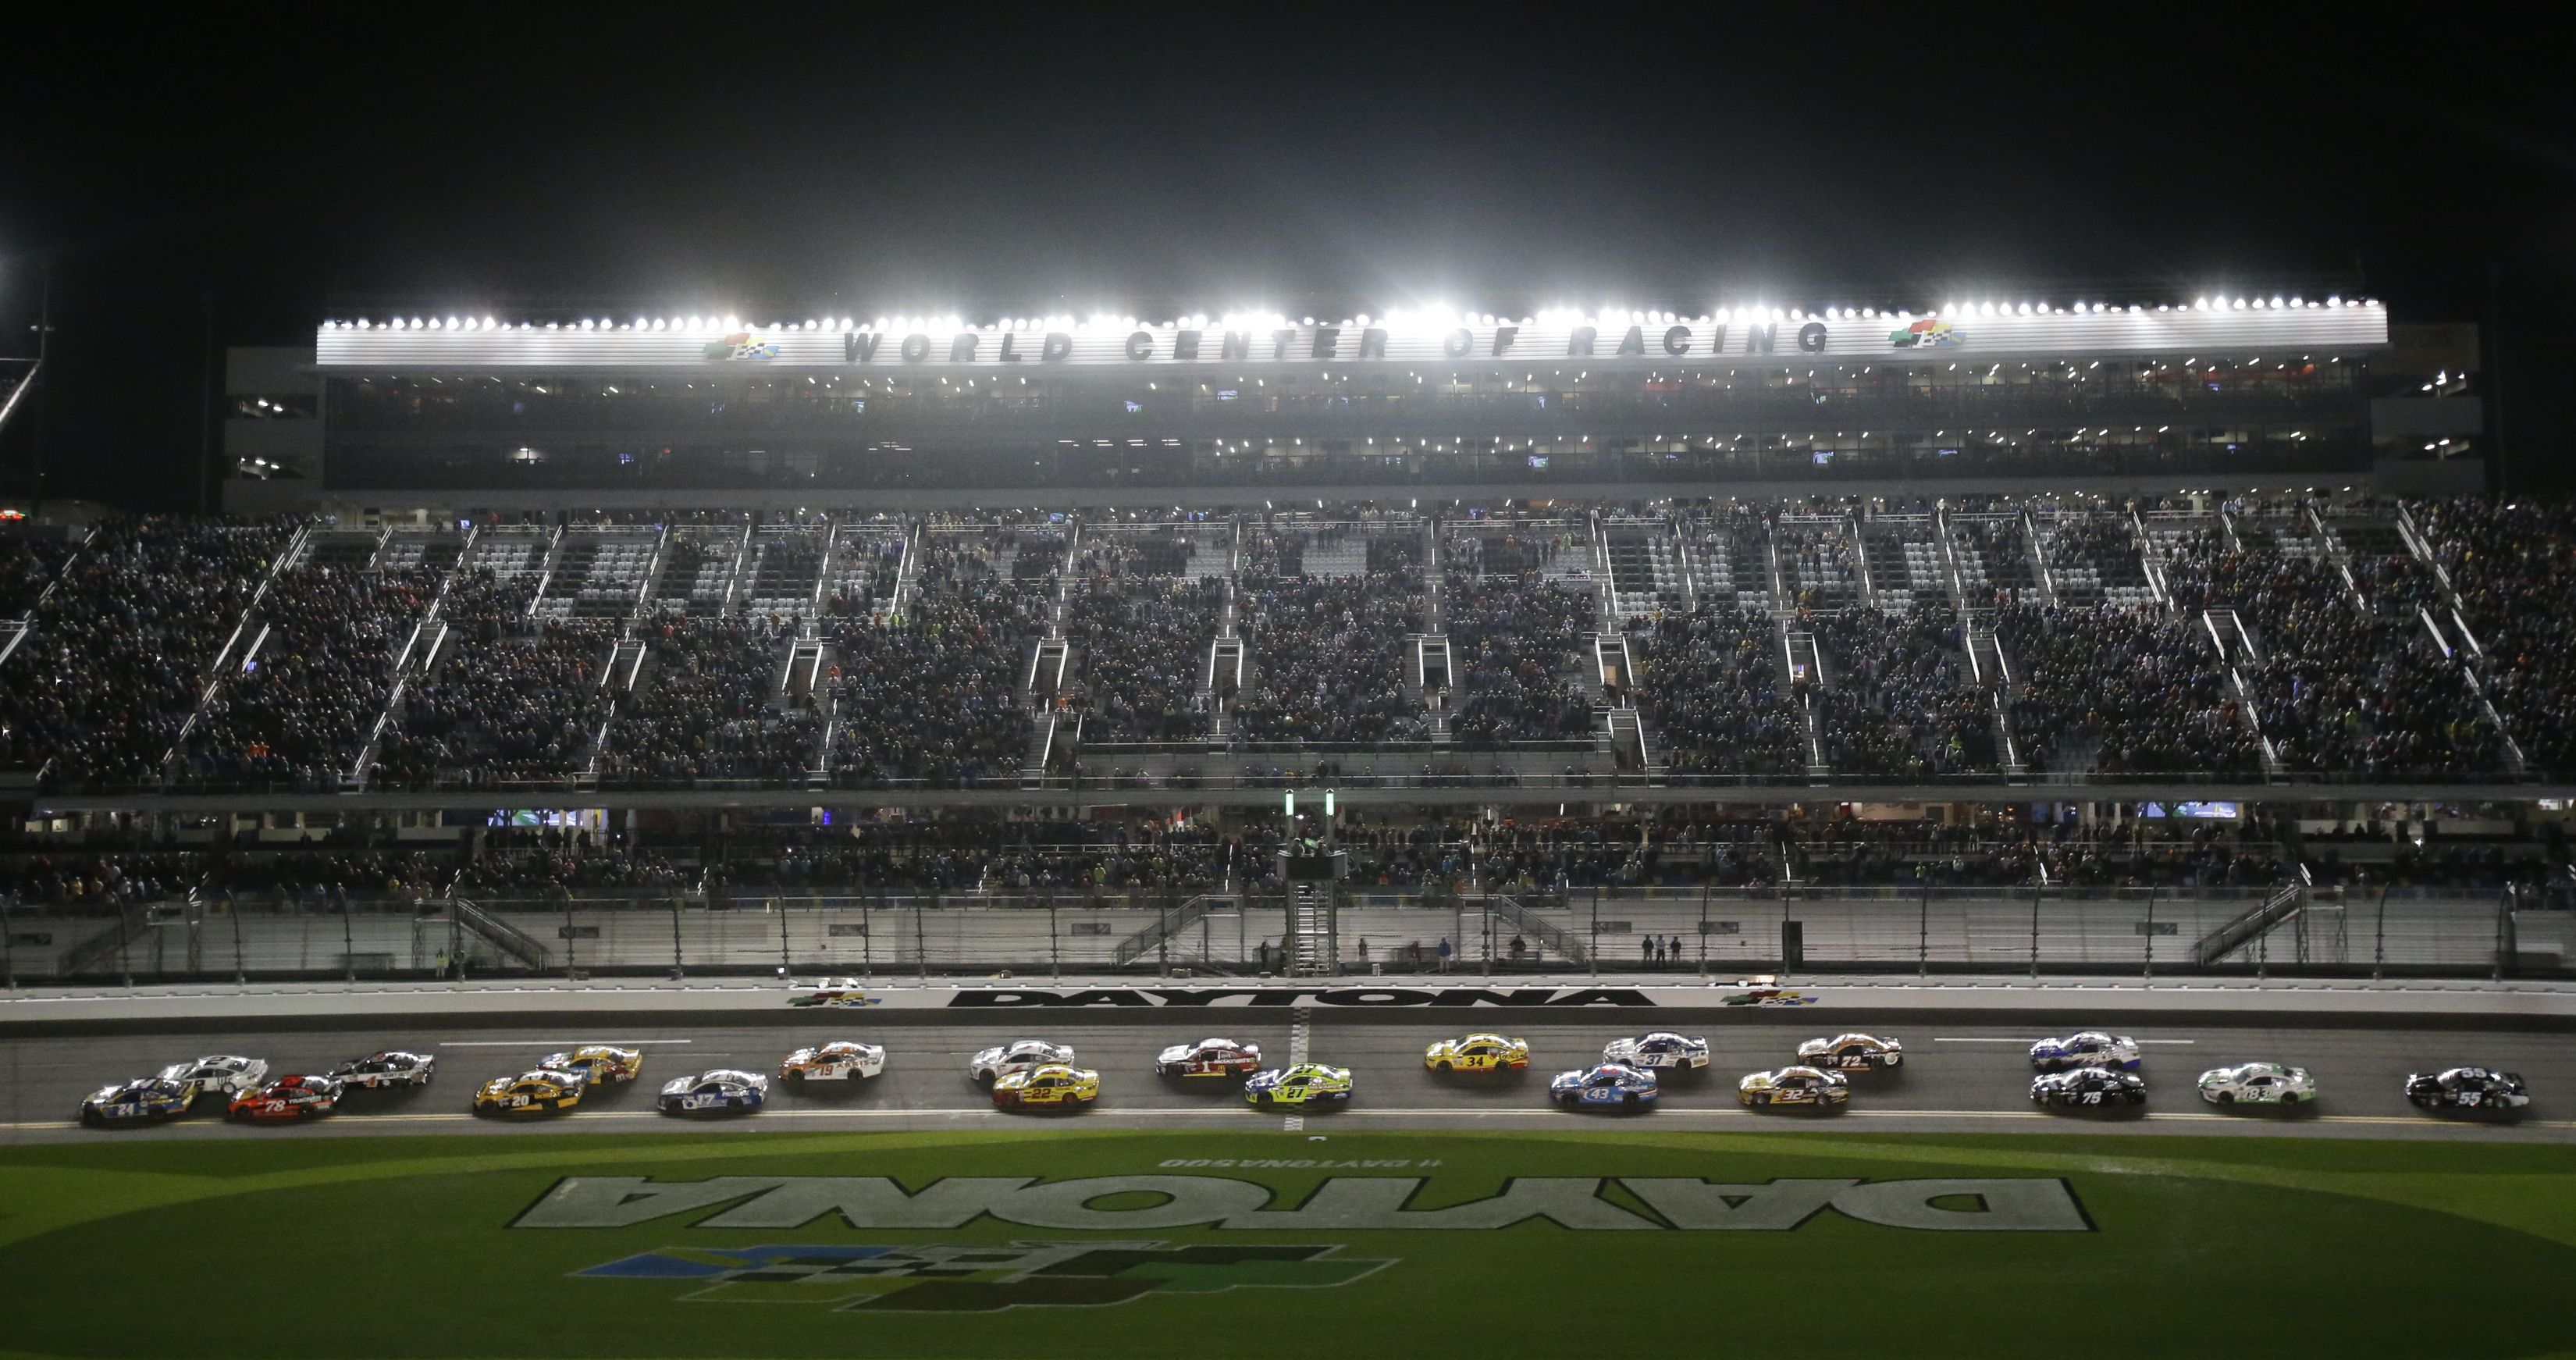 Chase Elliott, left, leads the field of cars for the start of the first of two qualifying auto races for Sunday's NASCAR Daytona 500 at Daytona International Speedway, Thursday, Feb. 23, 2017, in Daytona Beach, Fla. (AP Photo/John Raoux)